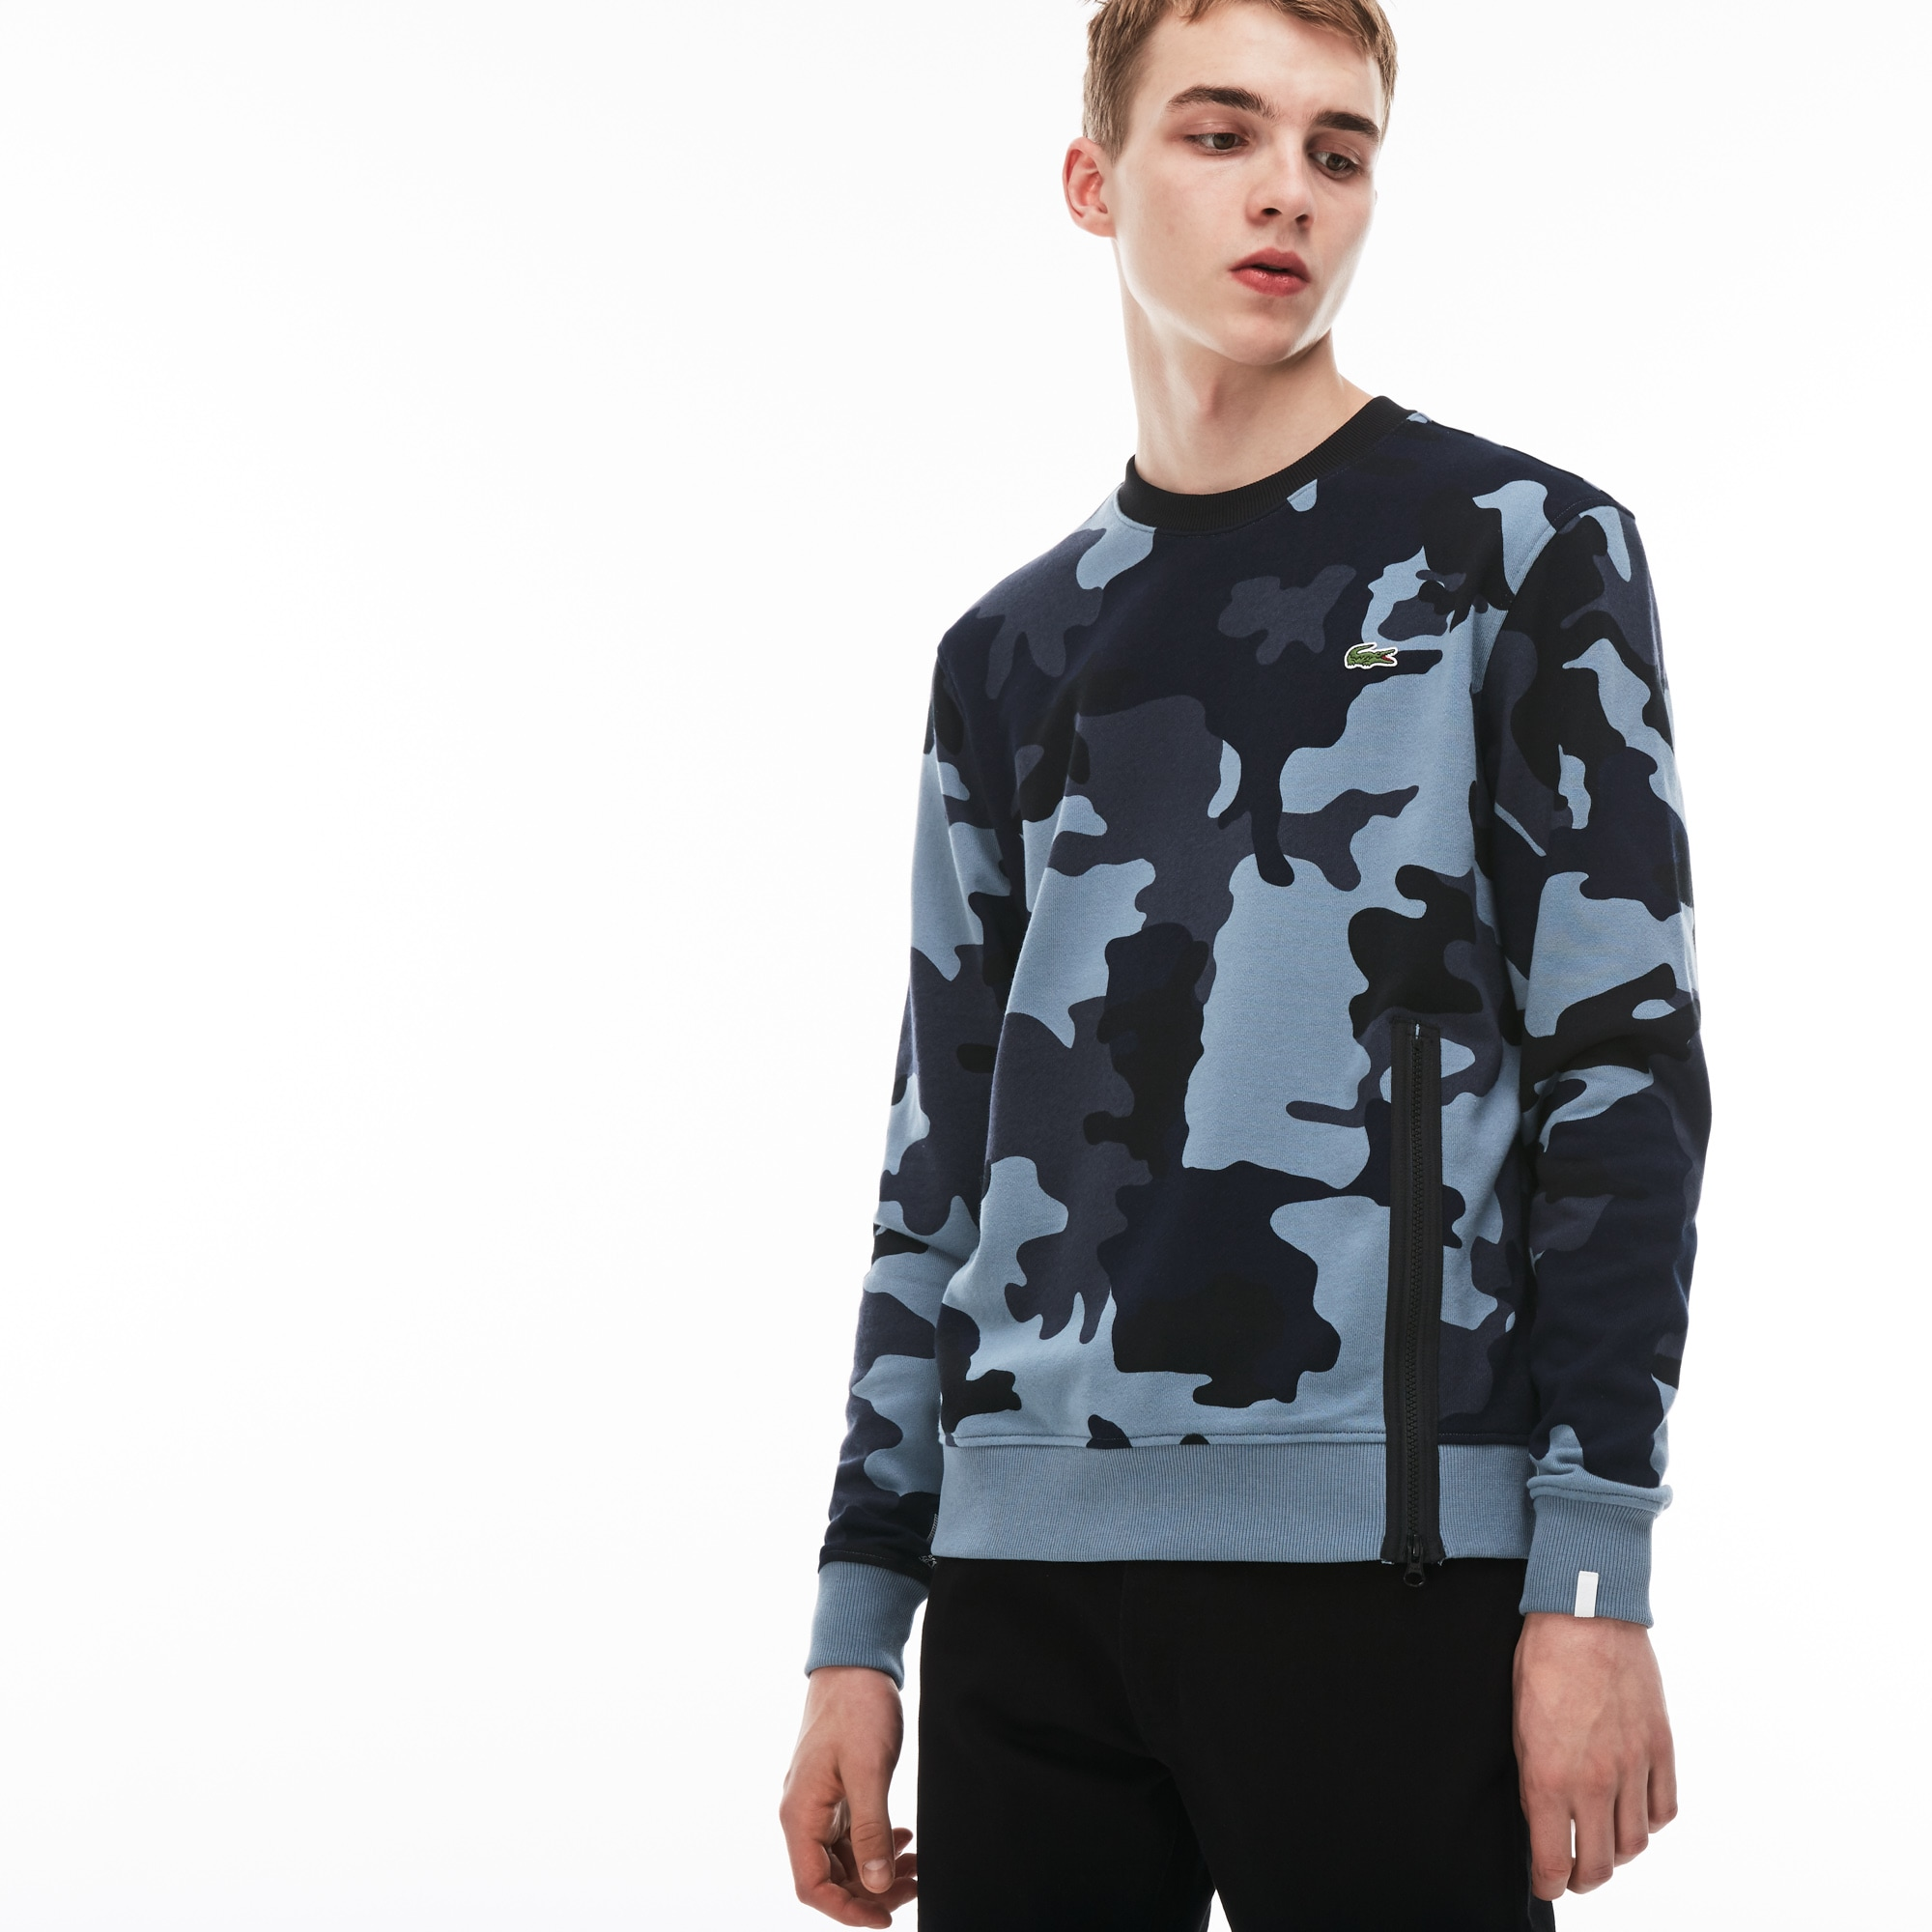 Men's Lacoste LIVE Camouflage Print Fleece Sweatshirt